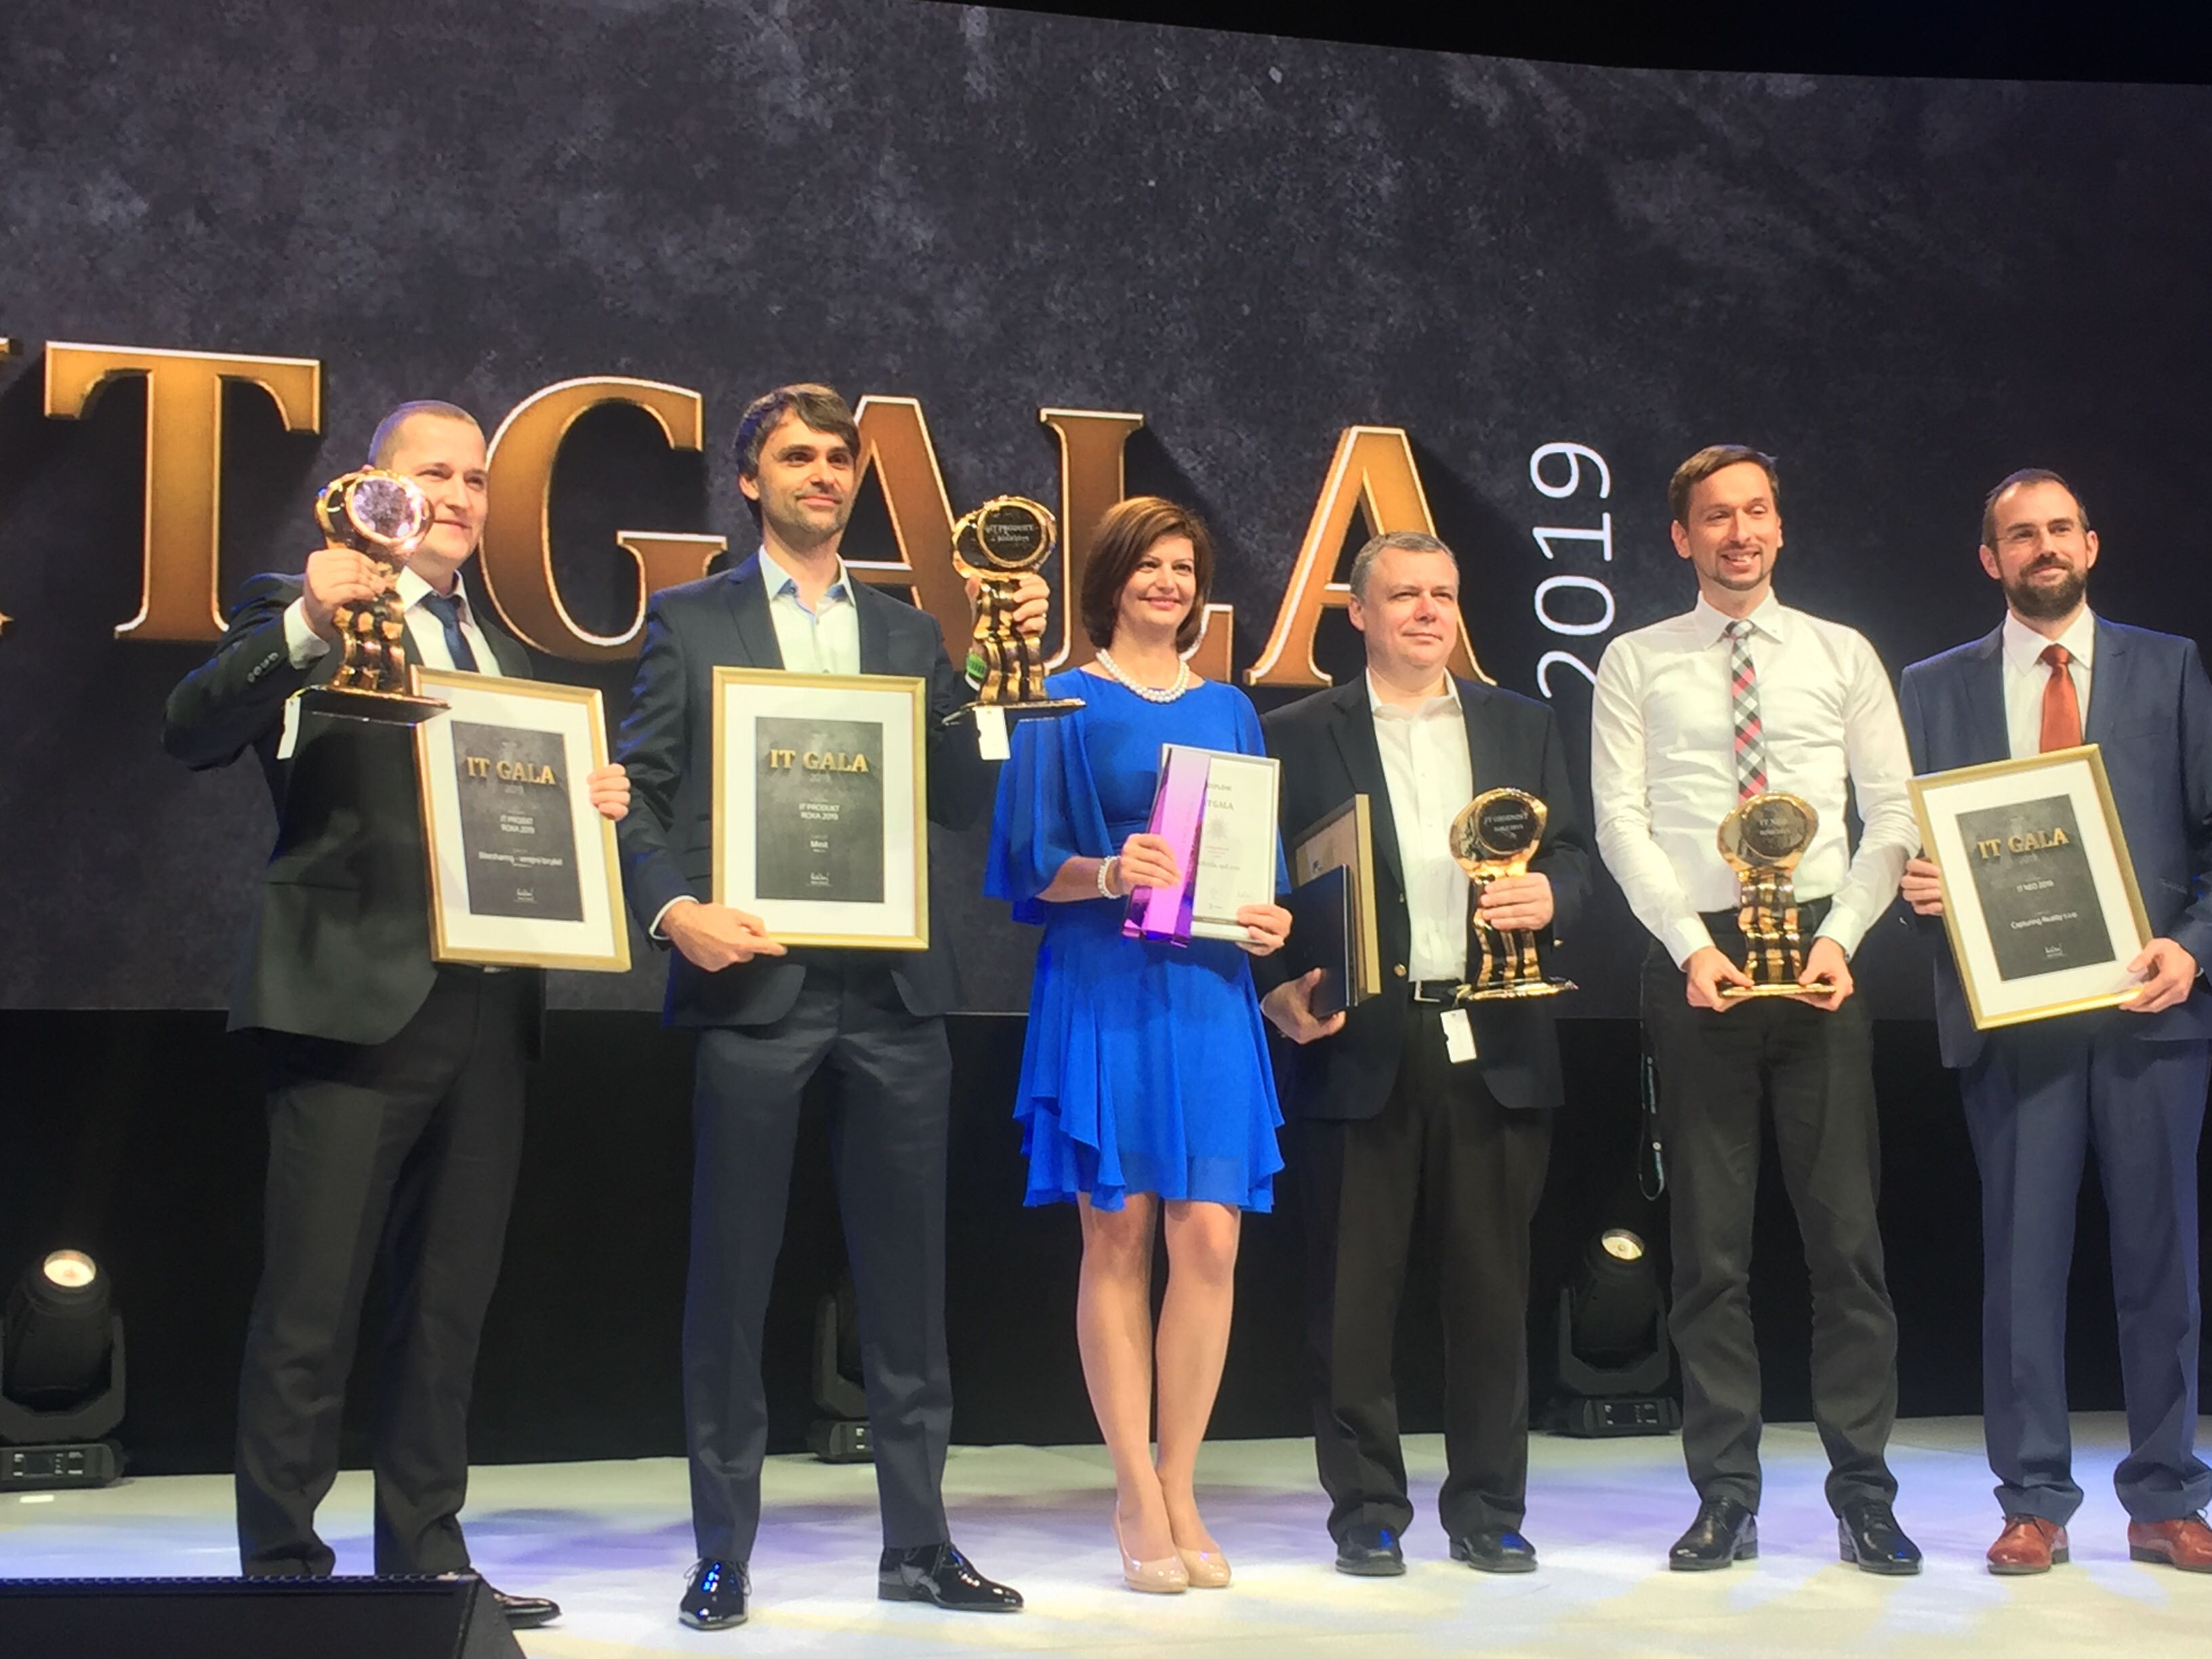 A New Investment and the IT Product of the Year IT GALA All Winners